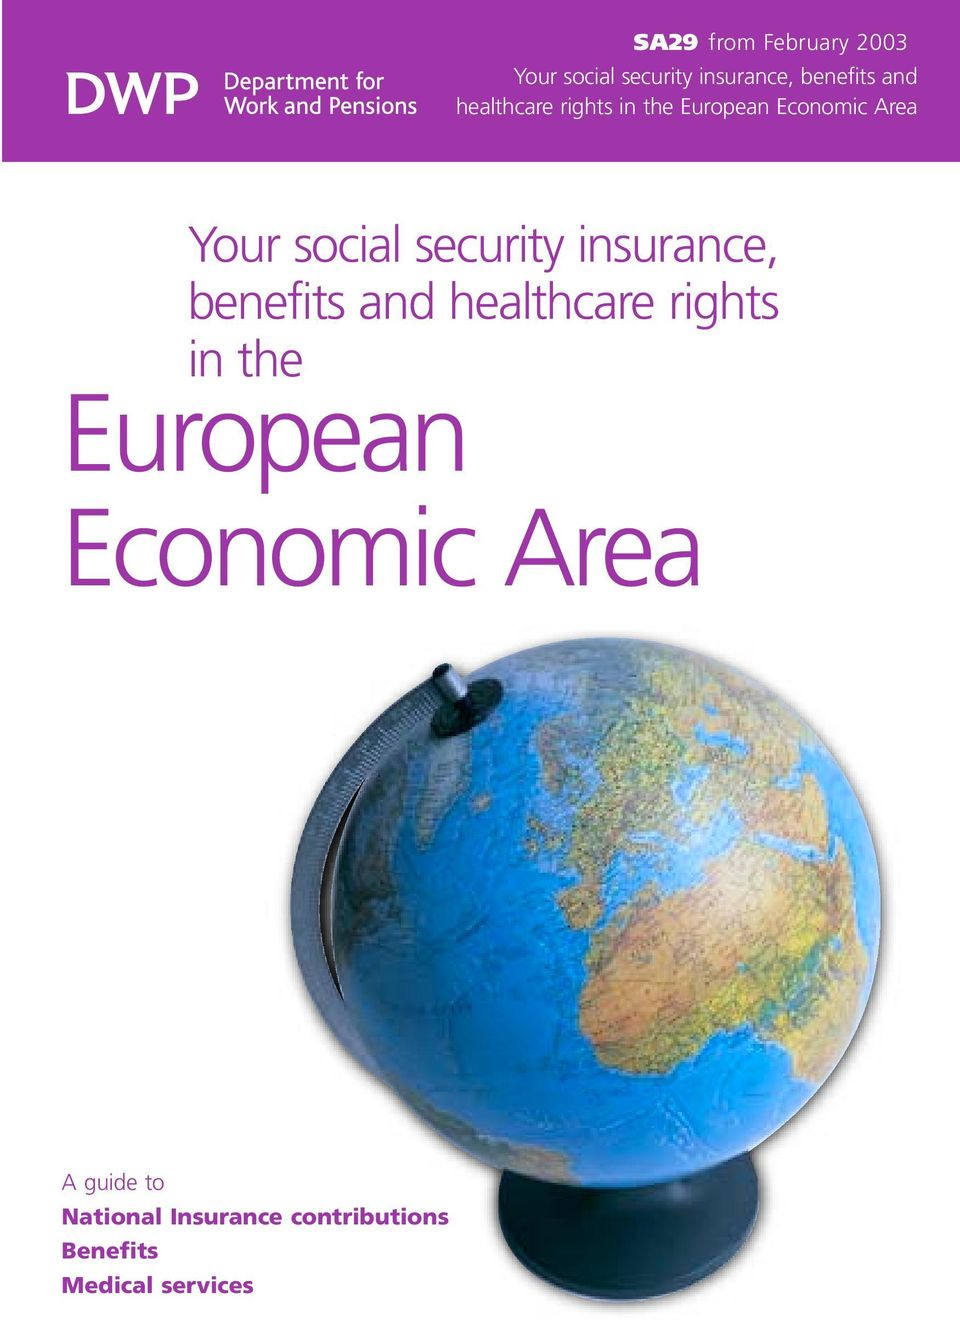 insurance, benefits and healthcare rights in the European Economic